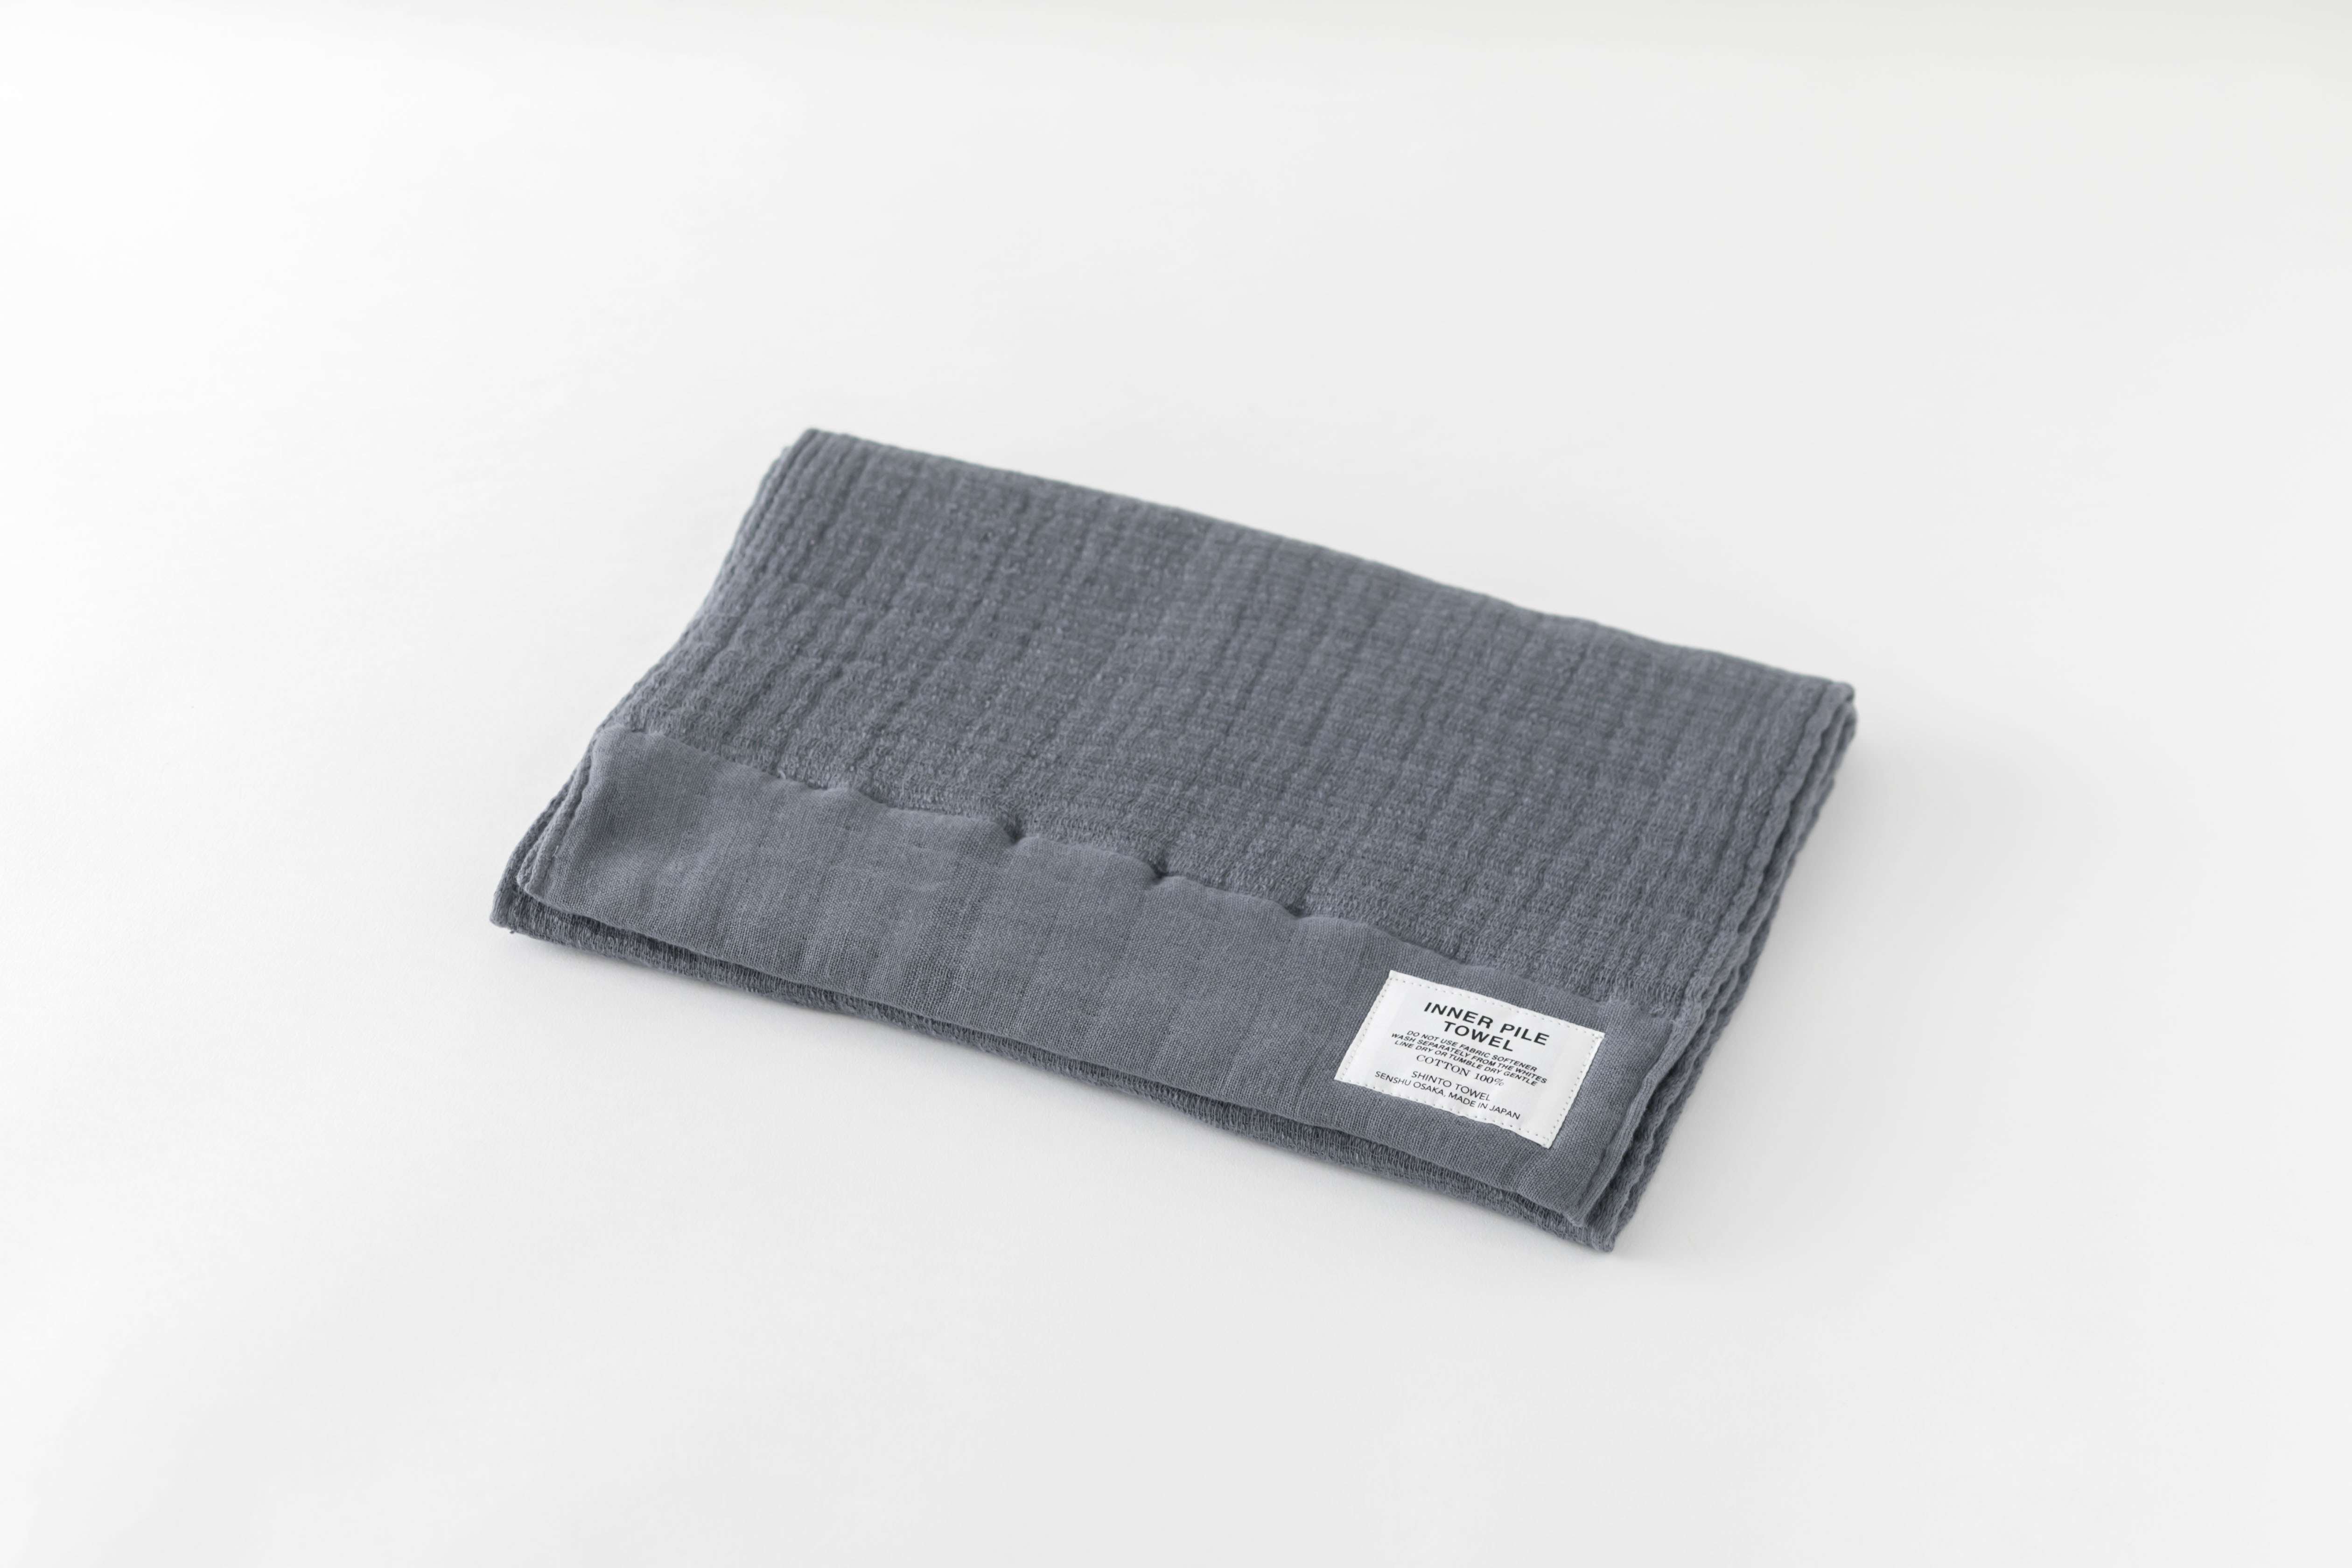 INNER PILE TOWEL : FACE TOWEL (Charcoal) / SHINTO TOWEL